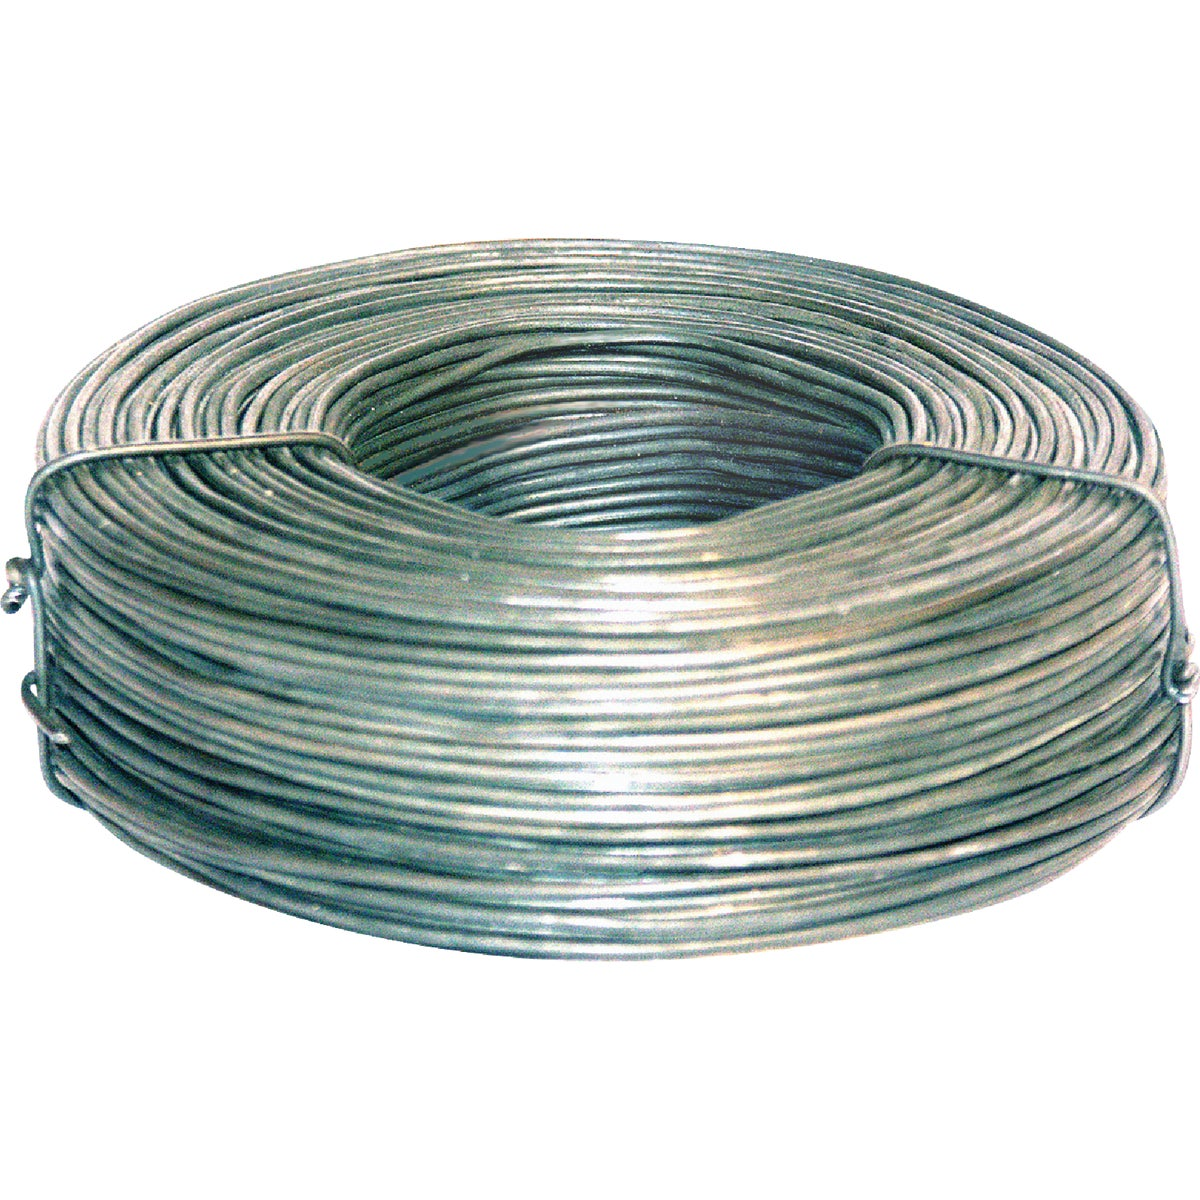 16GA 10# GLV SMOOTH WIRE - SWG1610 by Primesource